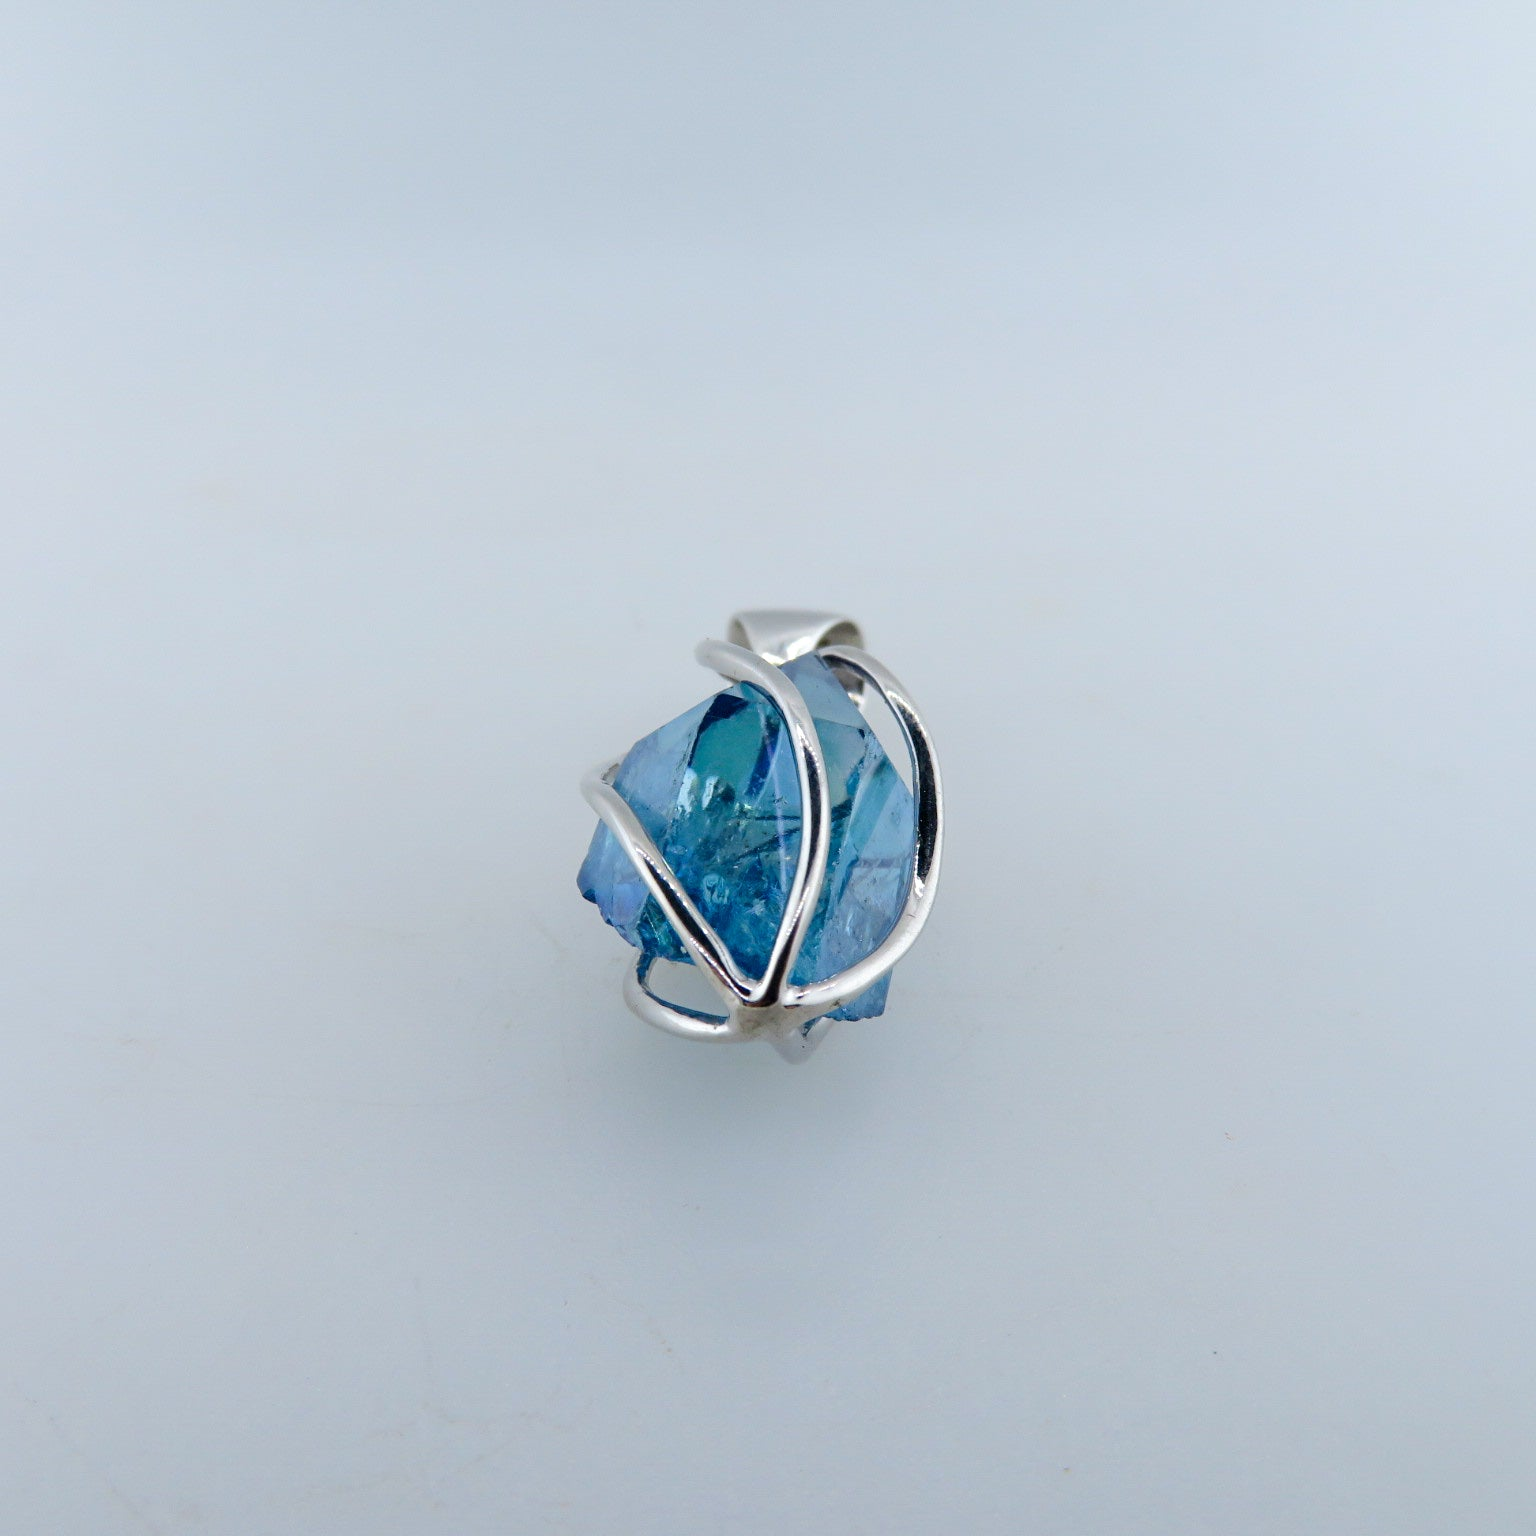 Aqua Aura Quartz Pendant with Sterling Silver